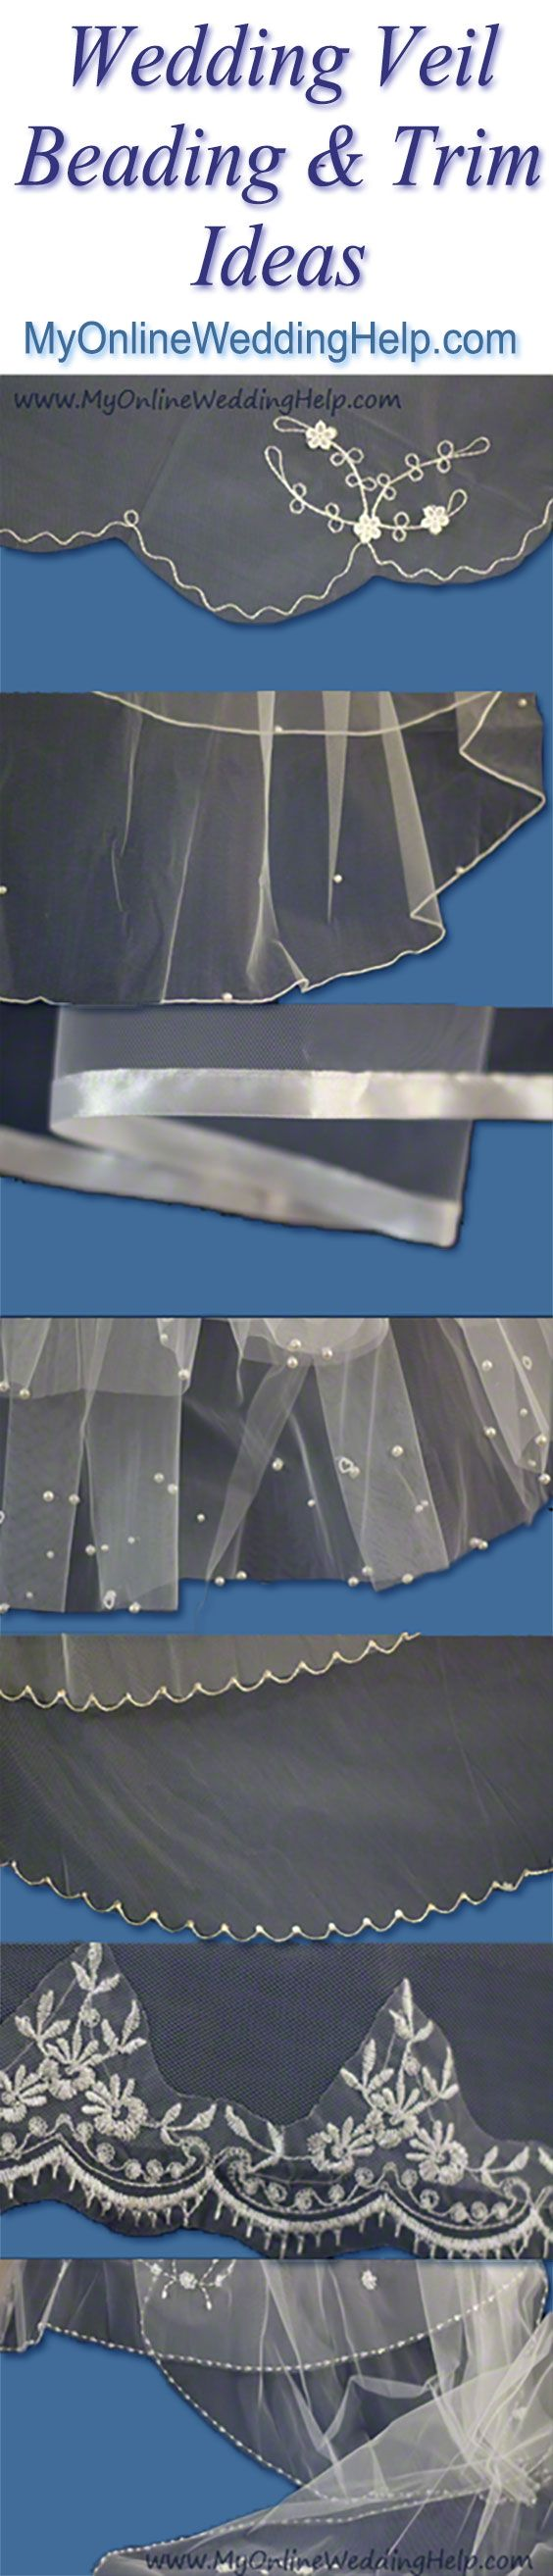 Video and pictures of examples of wedding veil trim and decor--ribbons, beads, lace, rhinestones, etc. Helps you decide what kind of decorations you want on your wedding veil.